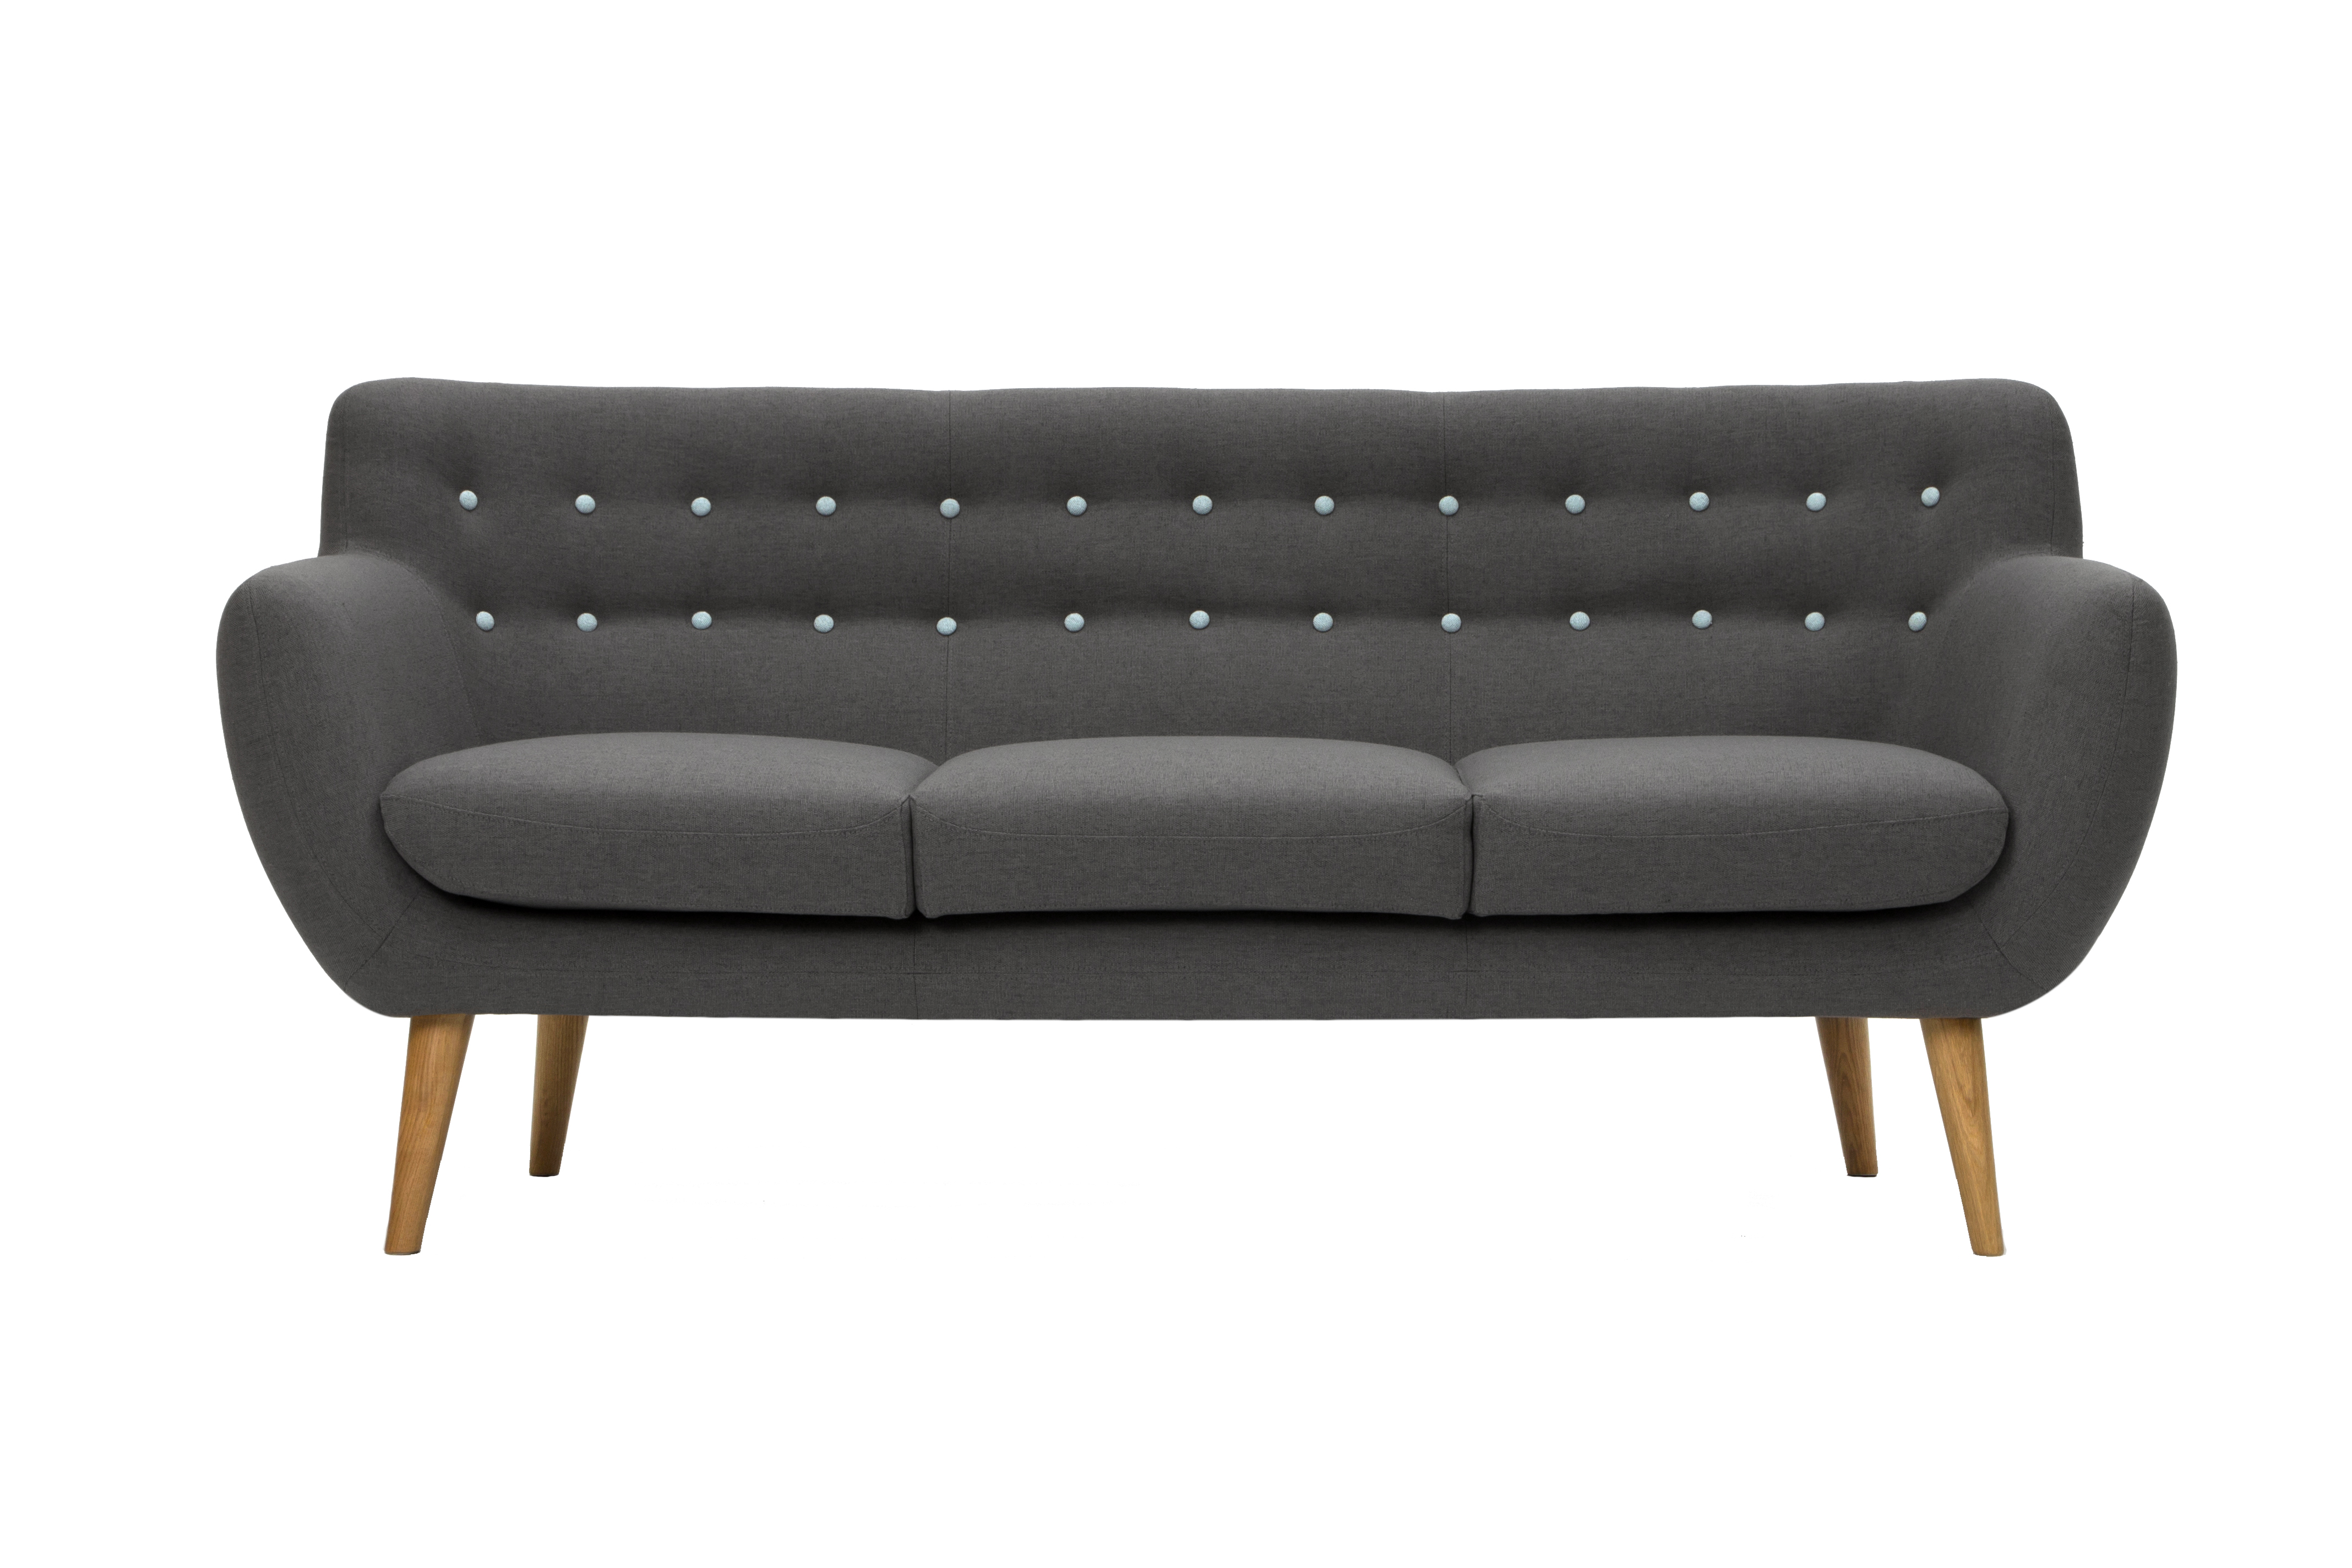 Sofa Via The Mimi Sofa Via Simply Grove Simply Grove